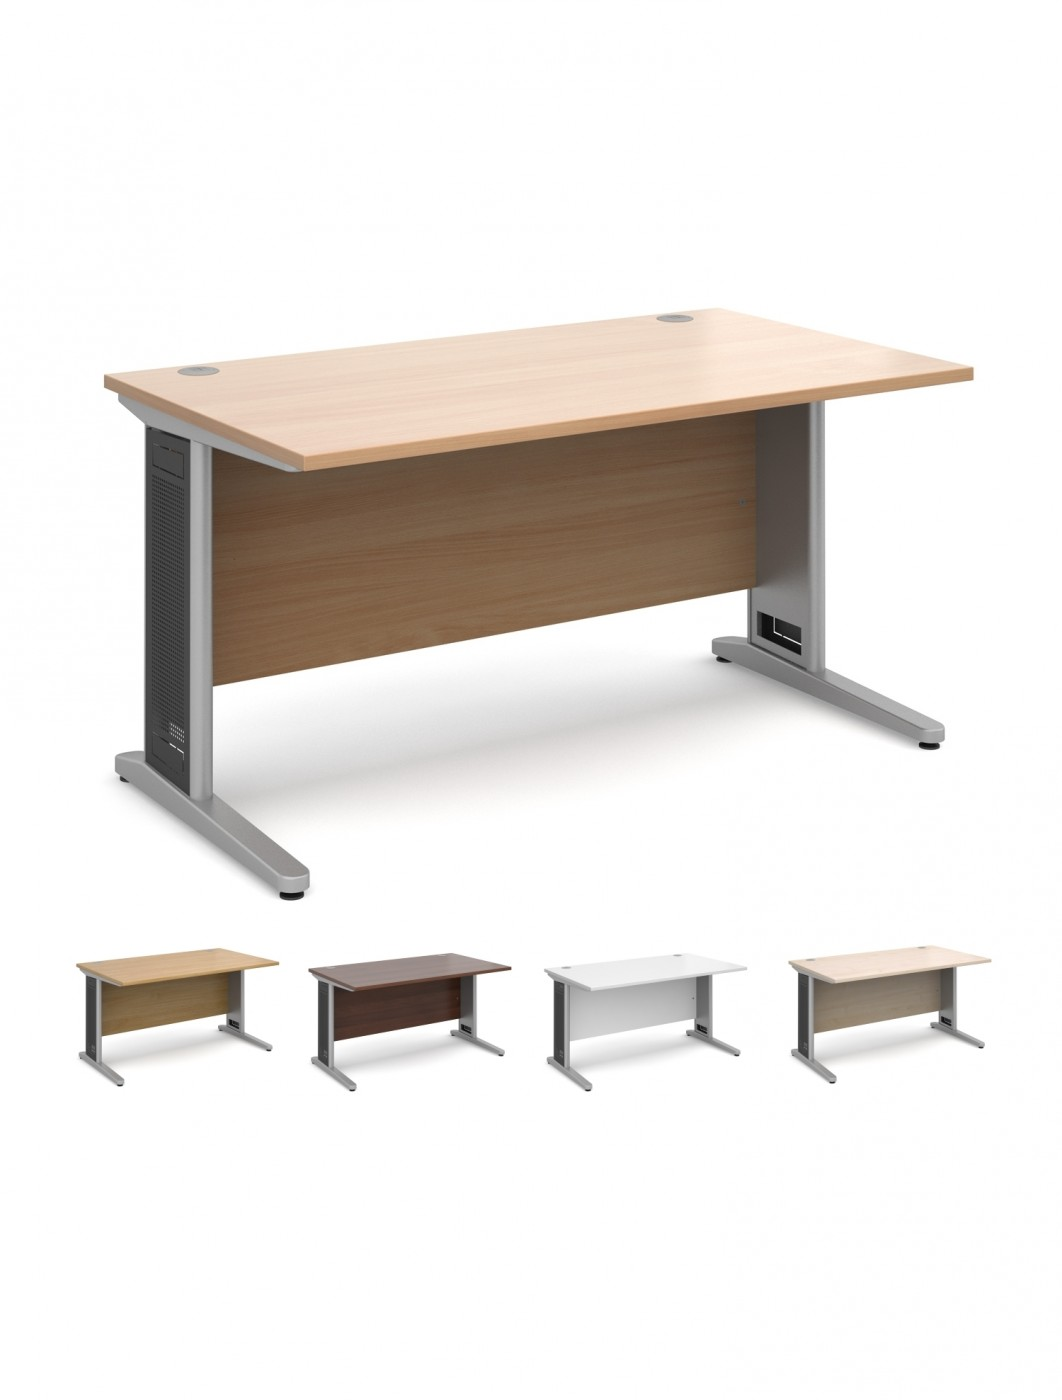 Beau Office Desks   Largo 1400mm Wide Straight Office Desk L14   Enlarged View